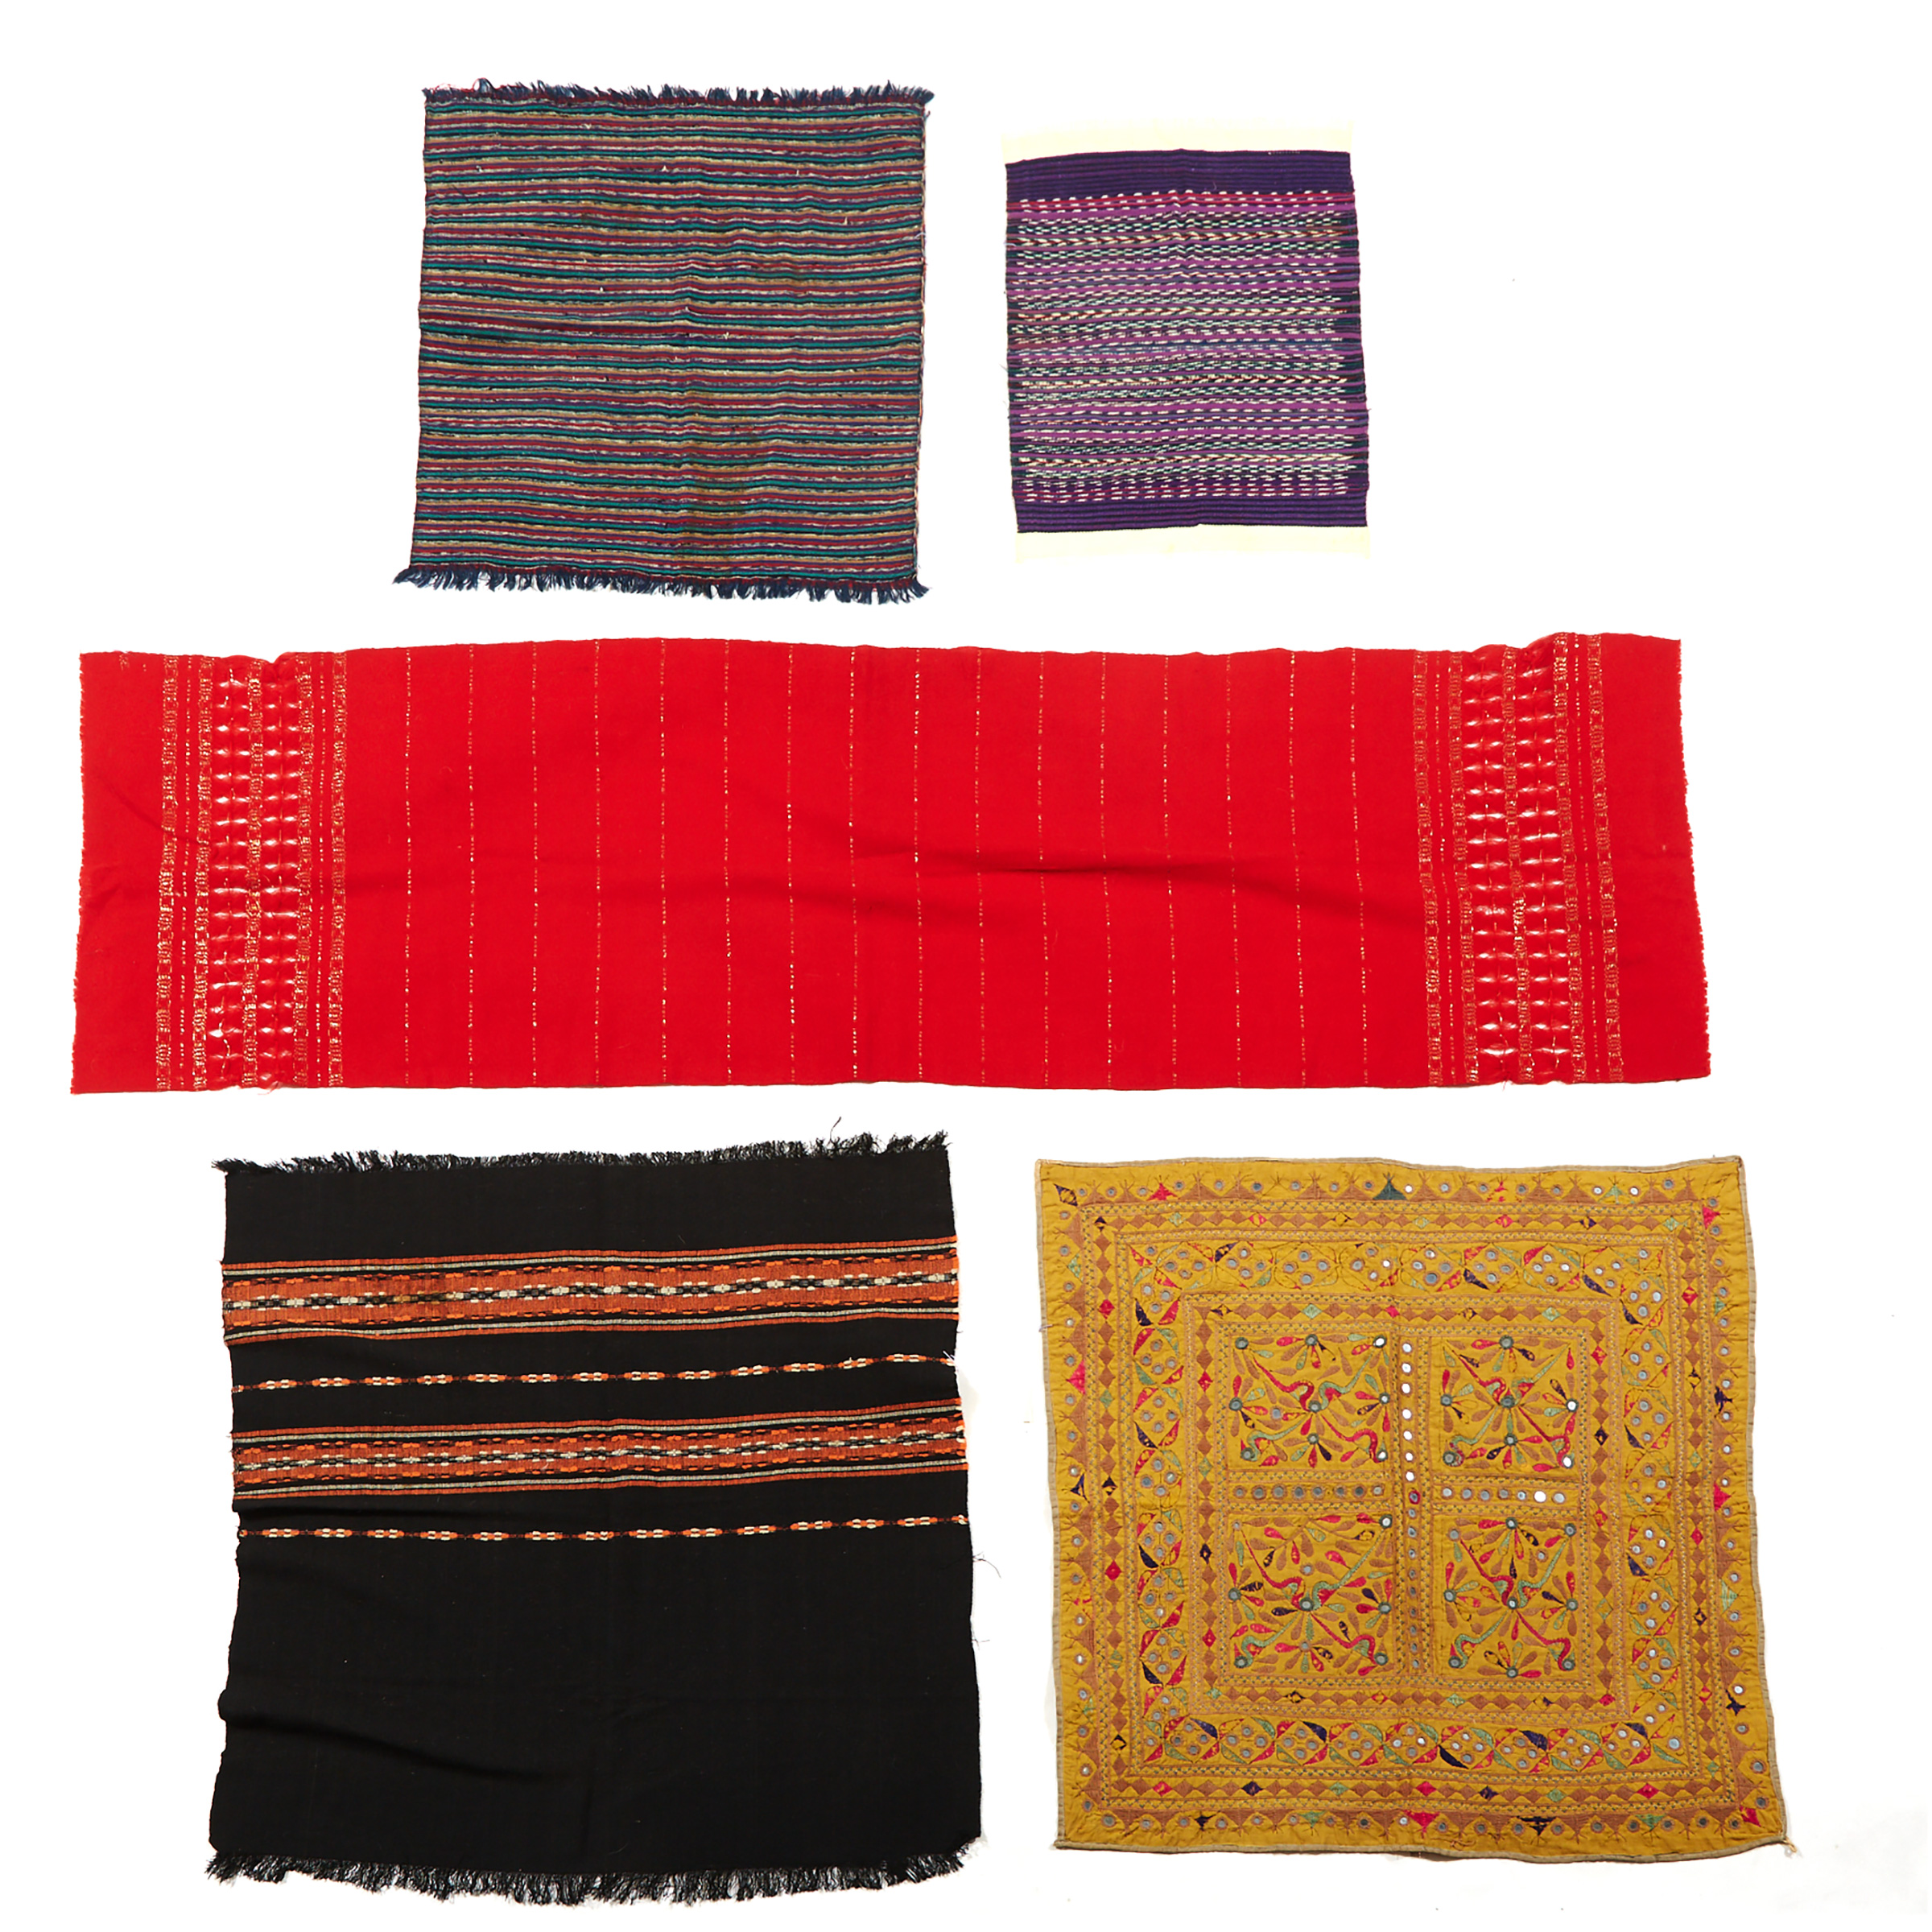 Group of Five Indian Textiles